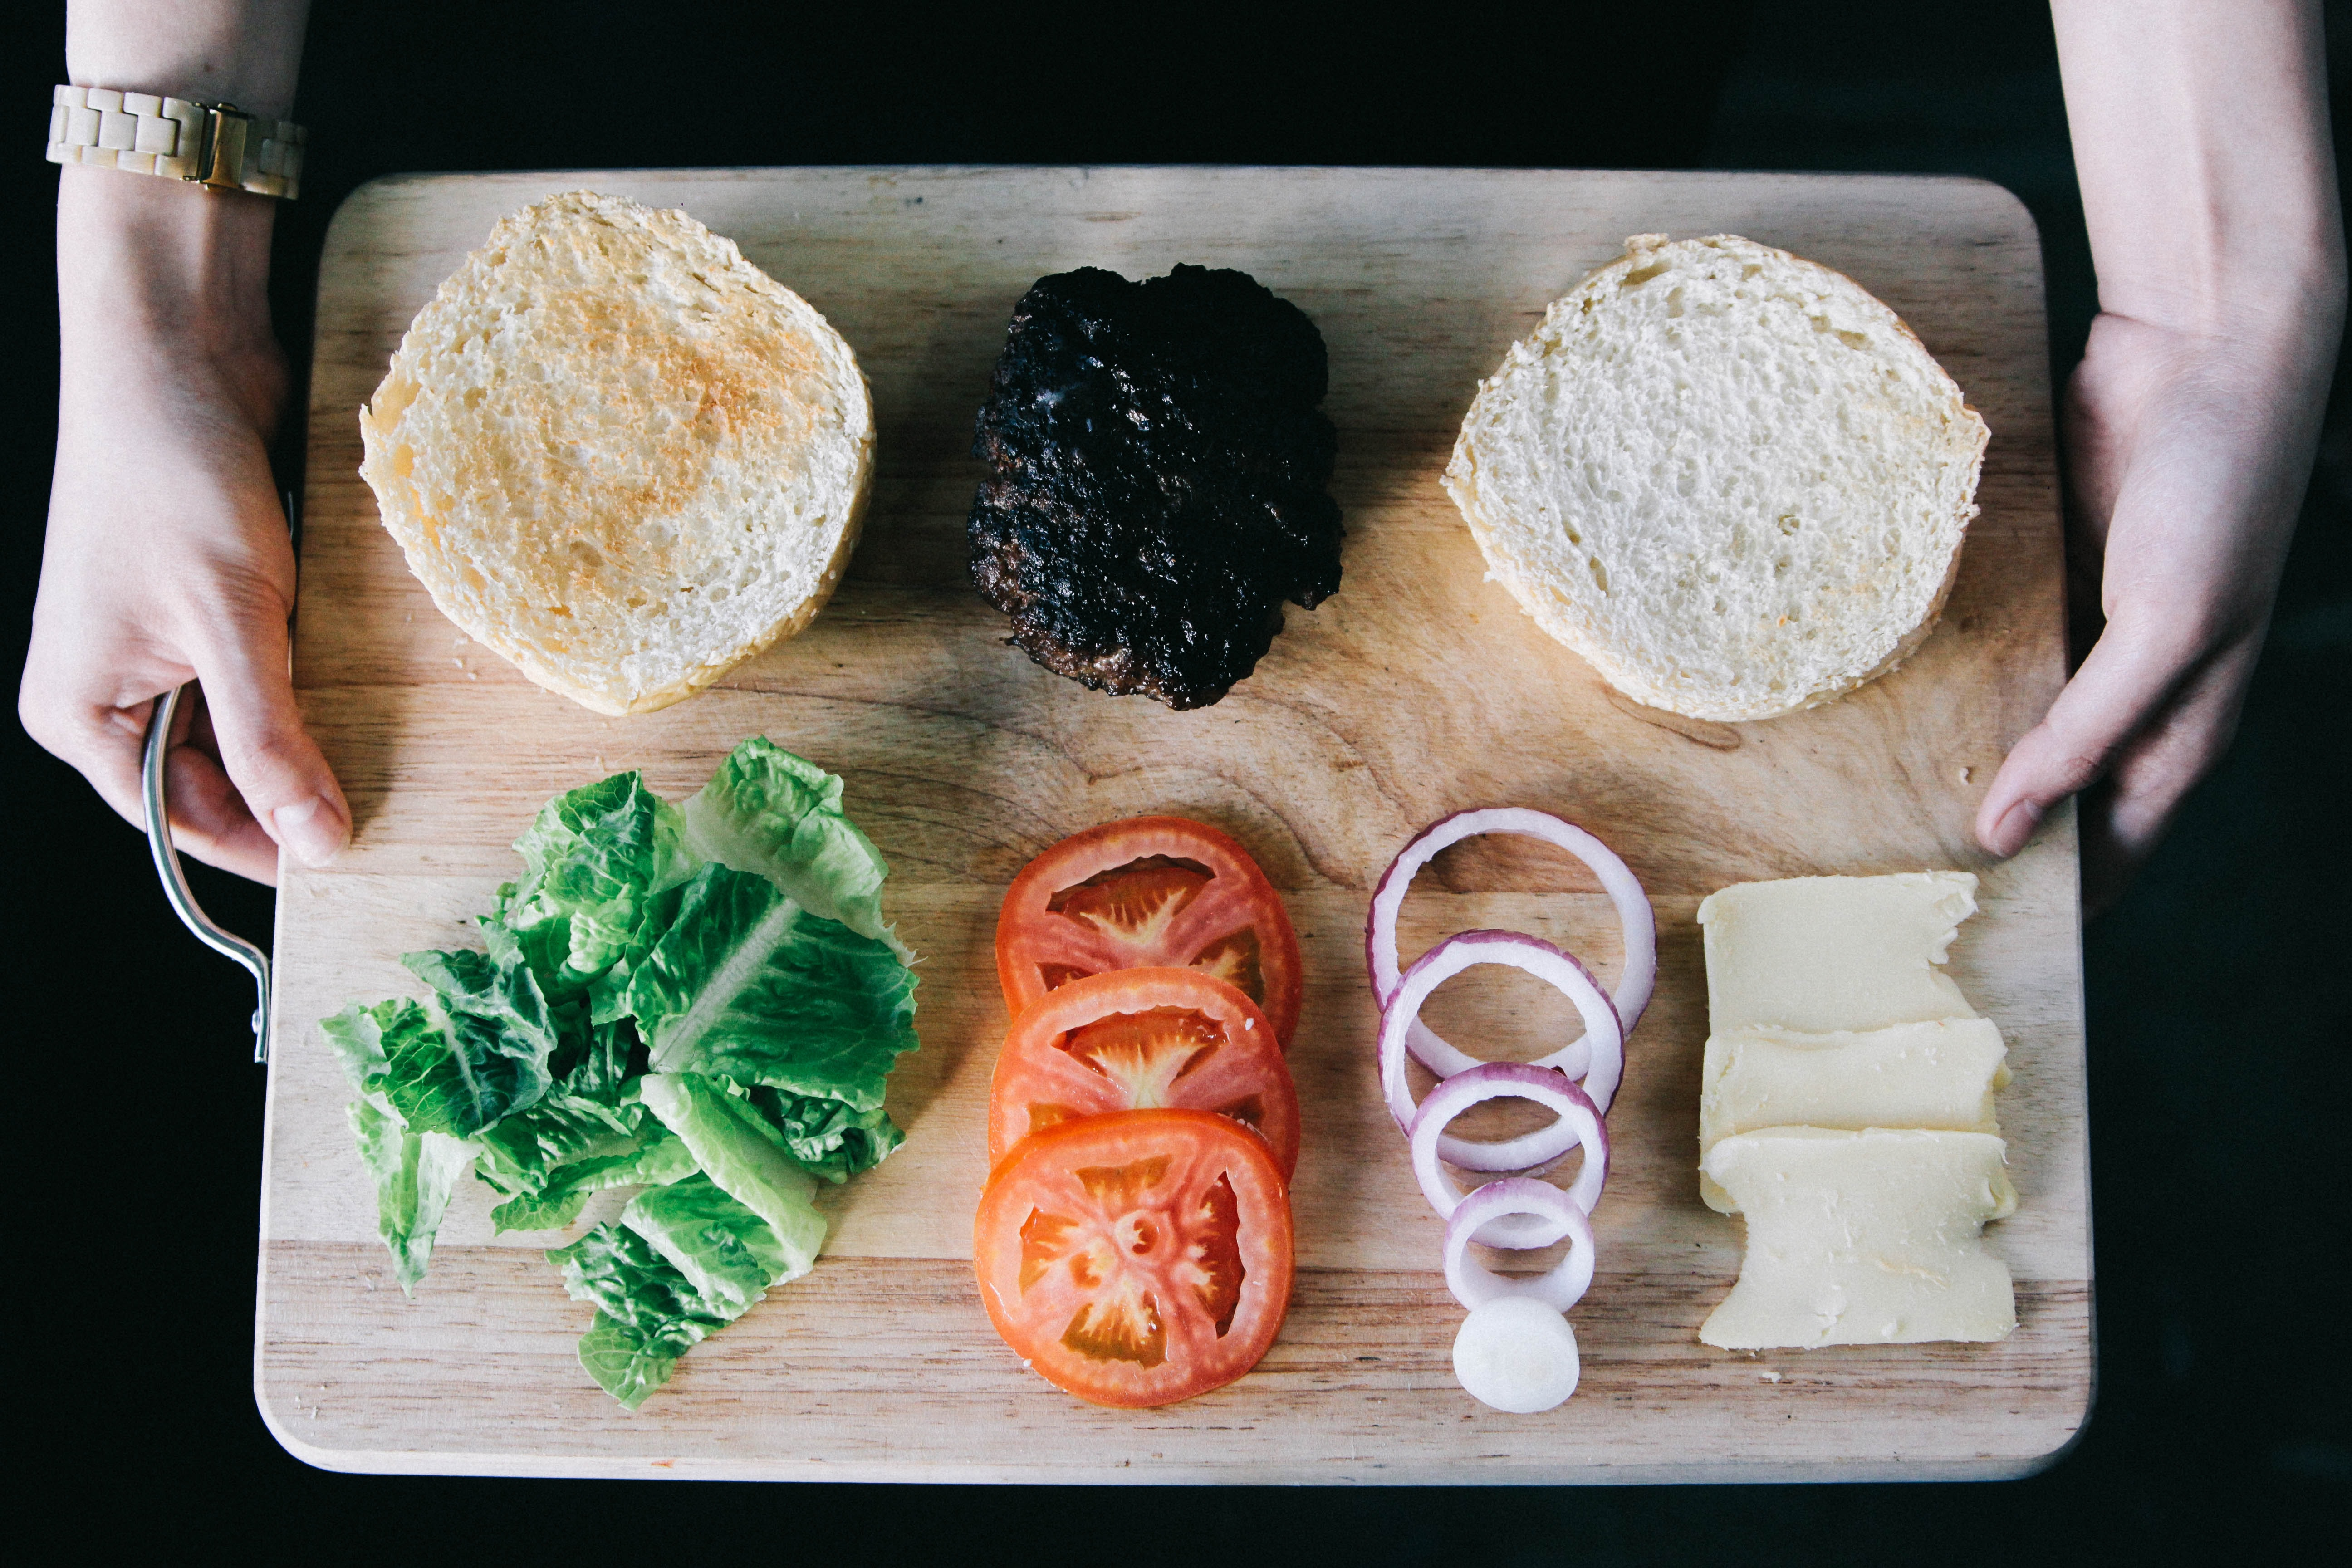 Neatly organized cutting board with hamburger, cheese, and vegetable fixings